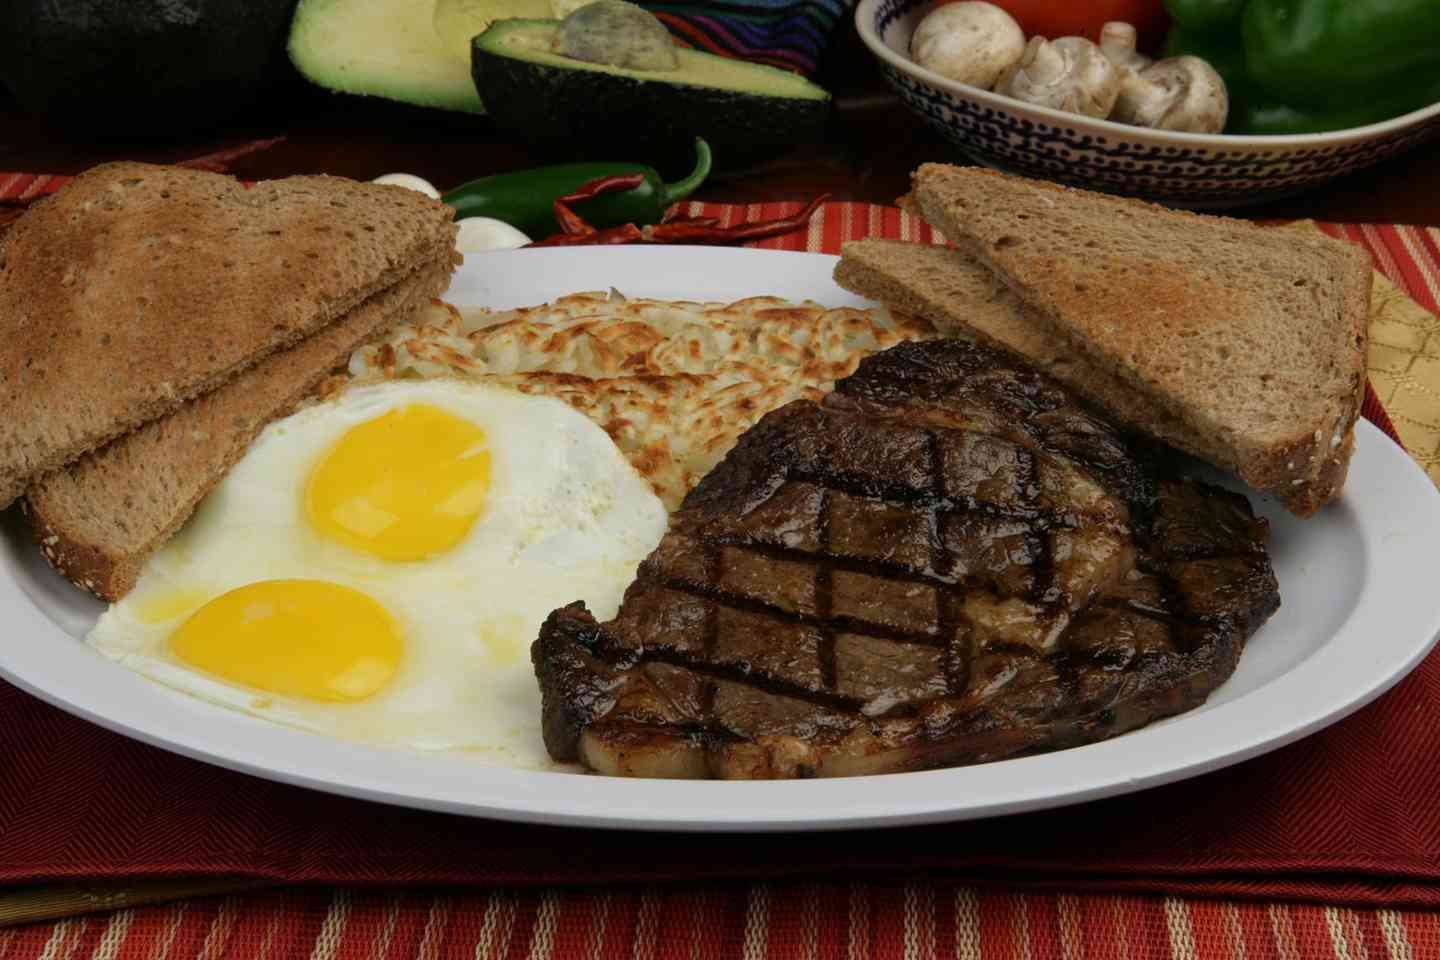 2. Steak and Eggs